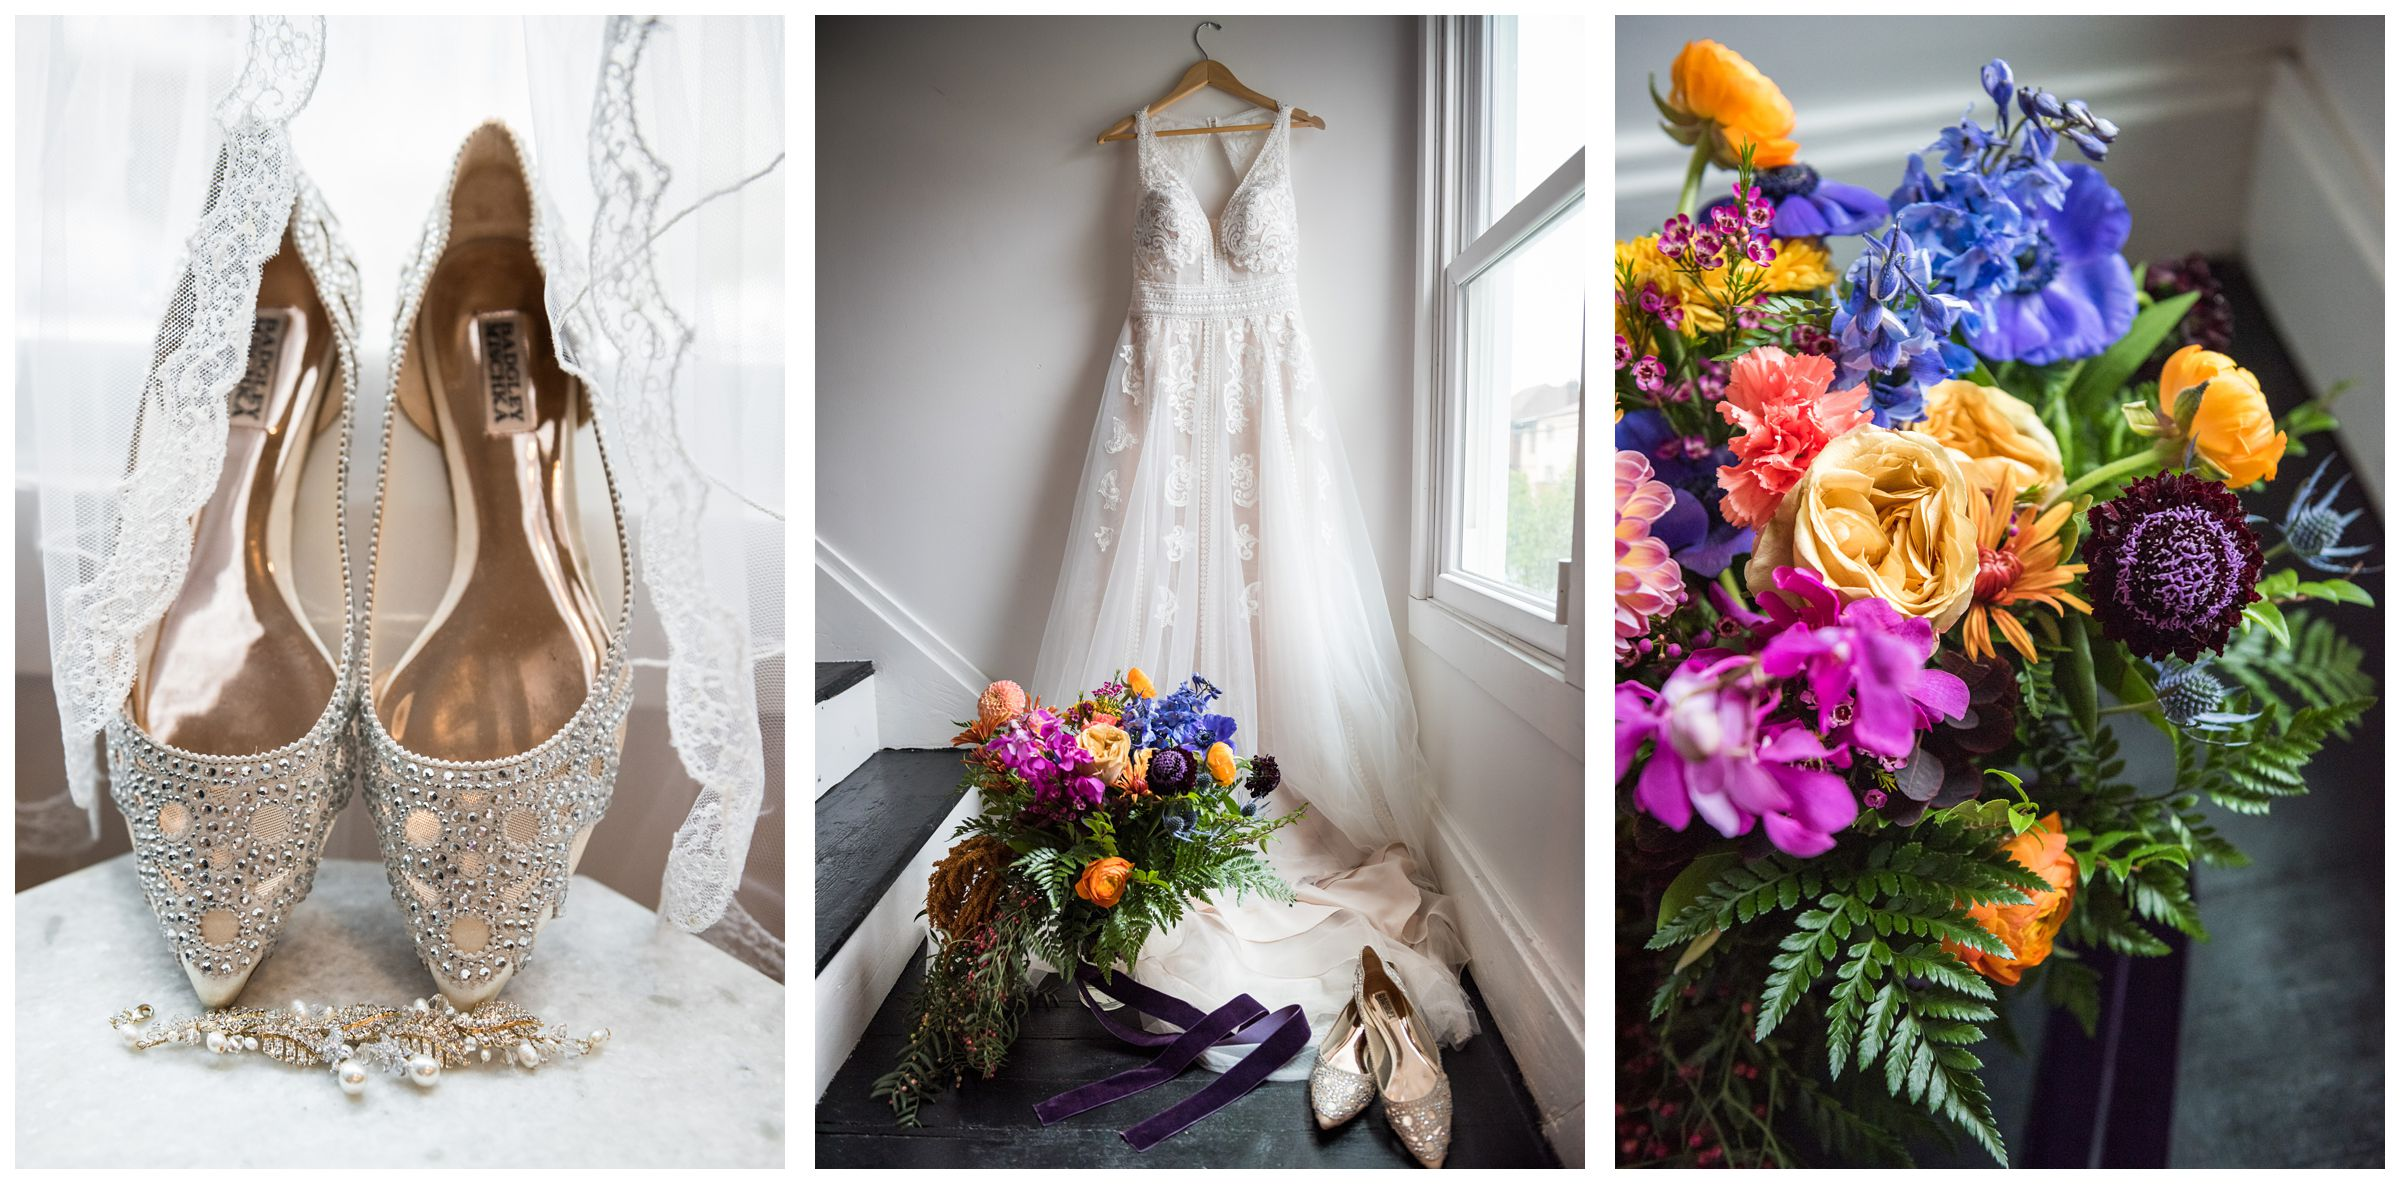 lace a-line wedding dress hanging on stairway by window with colorful jewel toned bouquet and bedazzled wedding flats